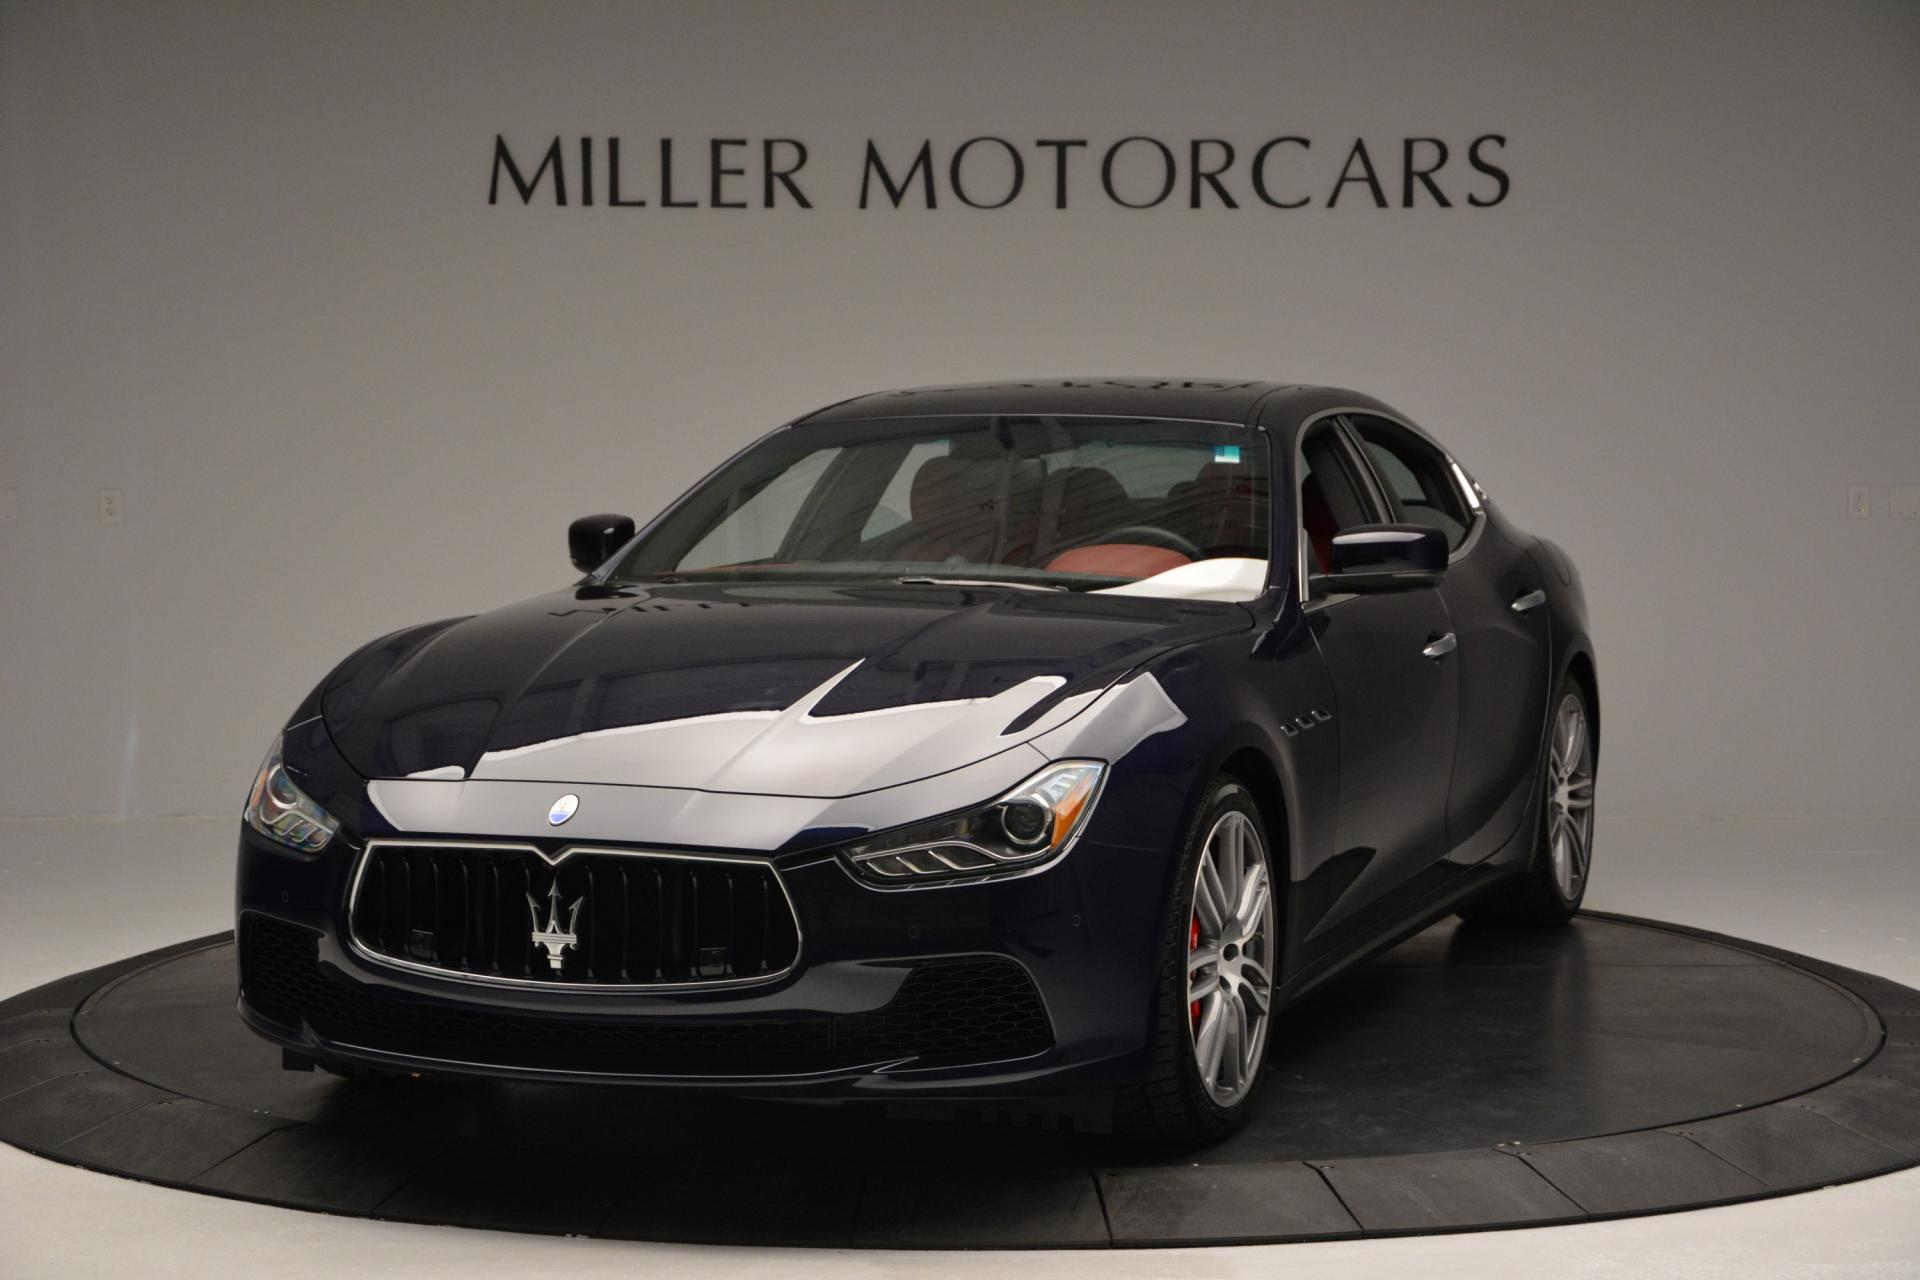 New 2016 Maserati Ghibli S Q4 For Sale In Greenwich, CT